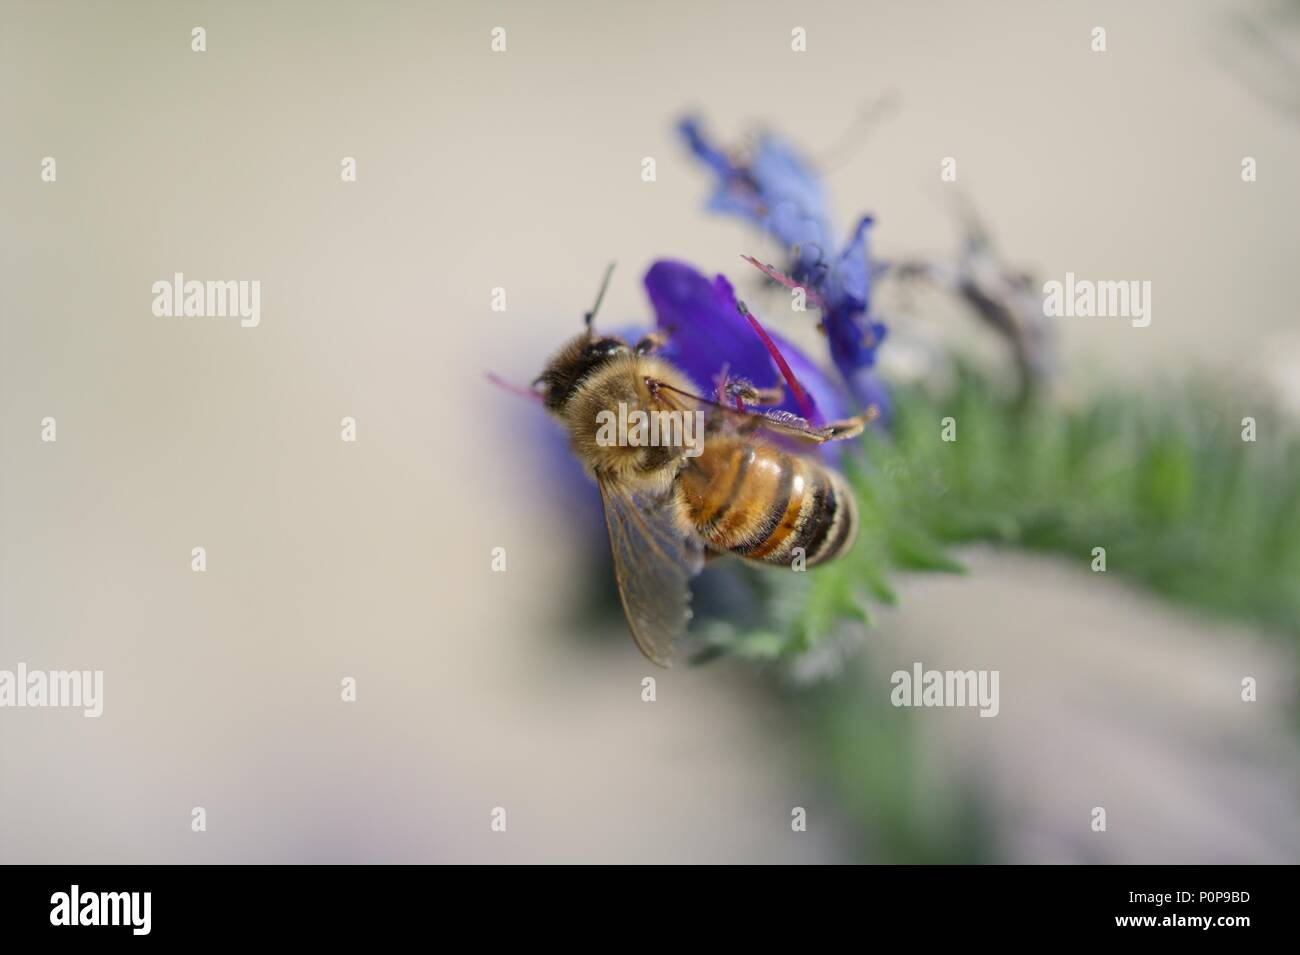 a honey bee at pollination - doing great work for our nature - safe them! - Stock Image